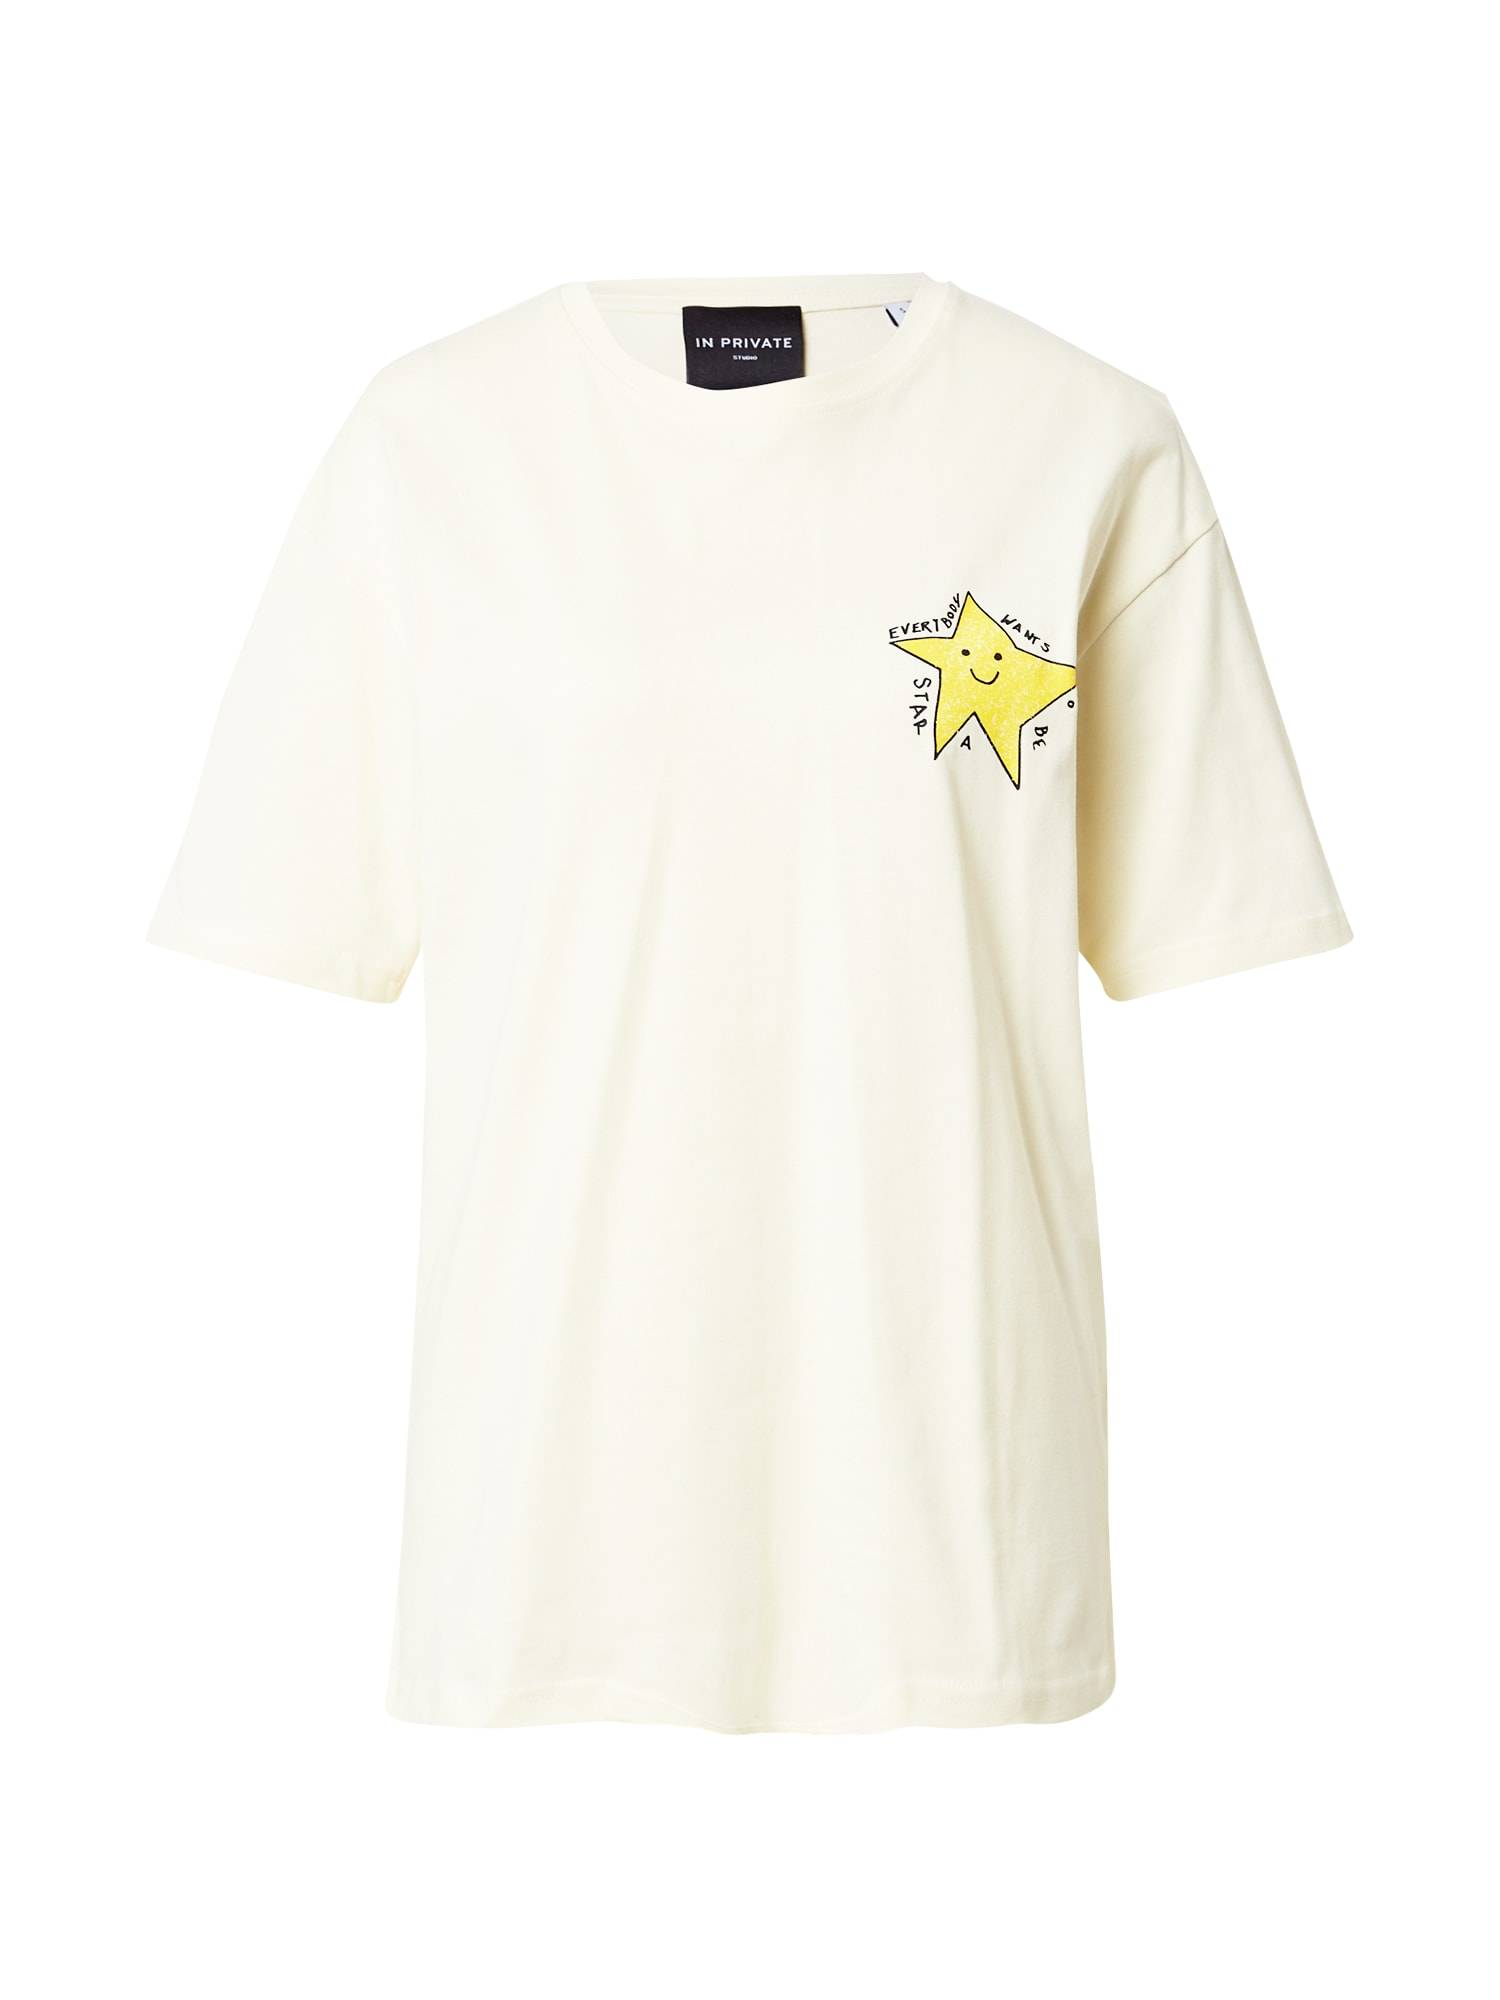 IN PRIVATE Studio T-shirt 'LONELY STAR'  - Blanc - Taille: M - female